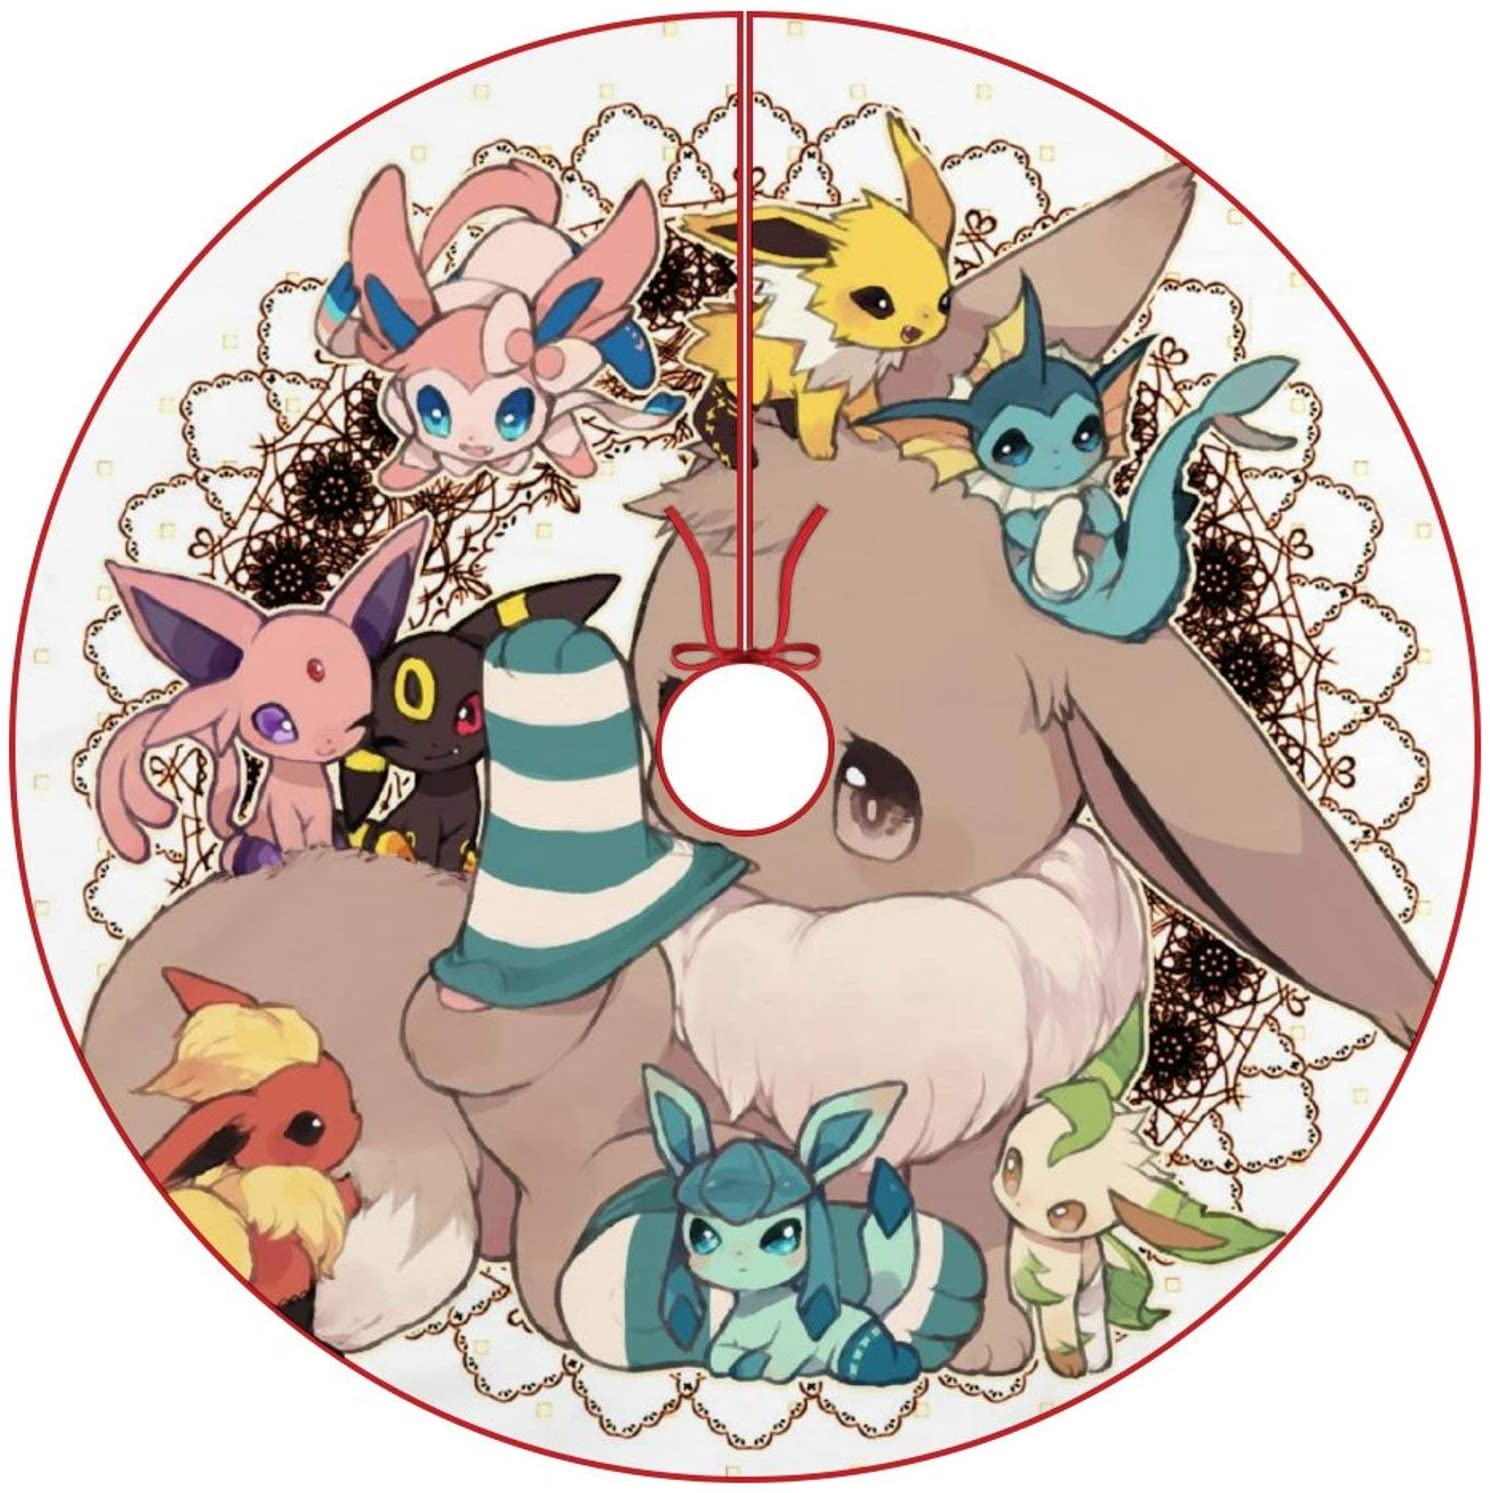 oobon Christmas Tree Skirt for Anime Fans,Eeveelution 4, Xmas Holiday Party Ornament Supplies Large Santa Tree Mat Decor for Gift and Decoration, 48 inches